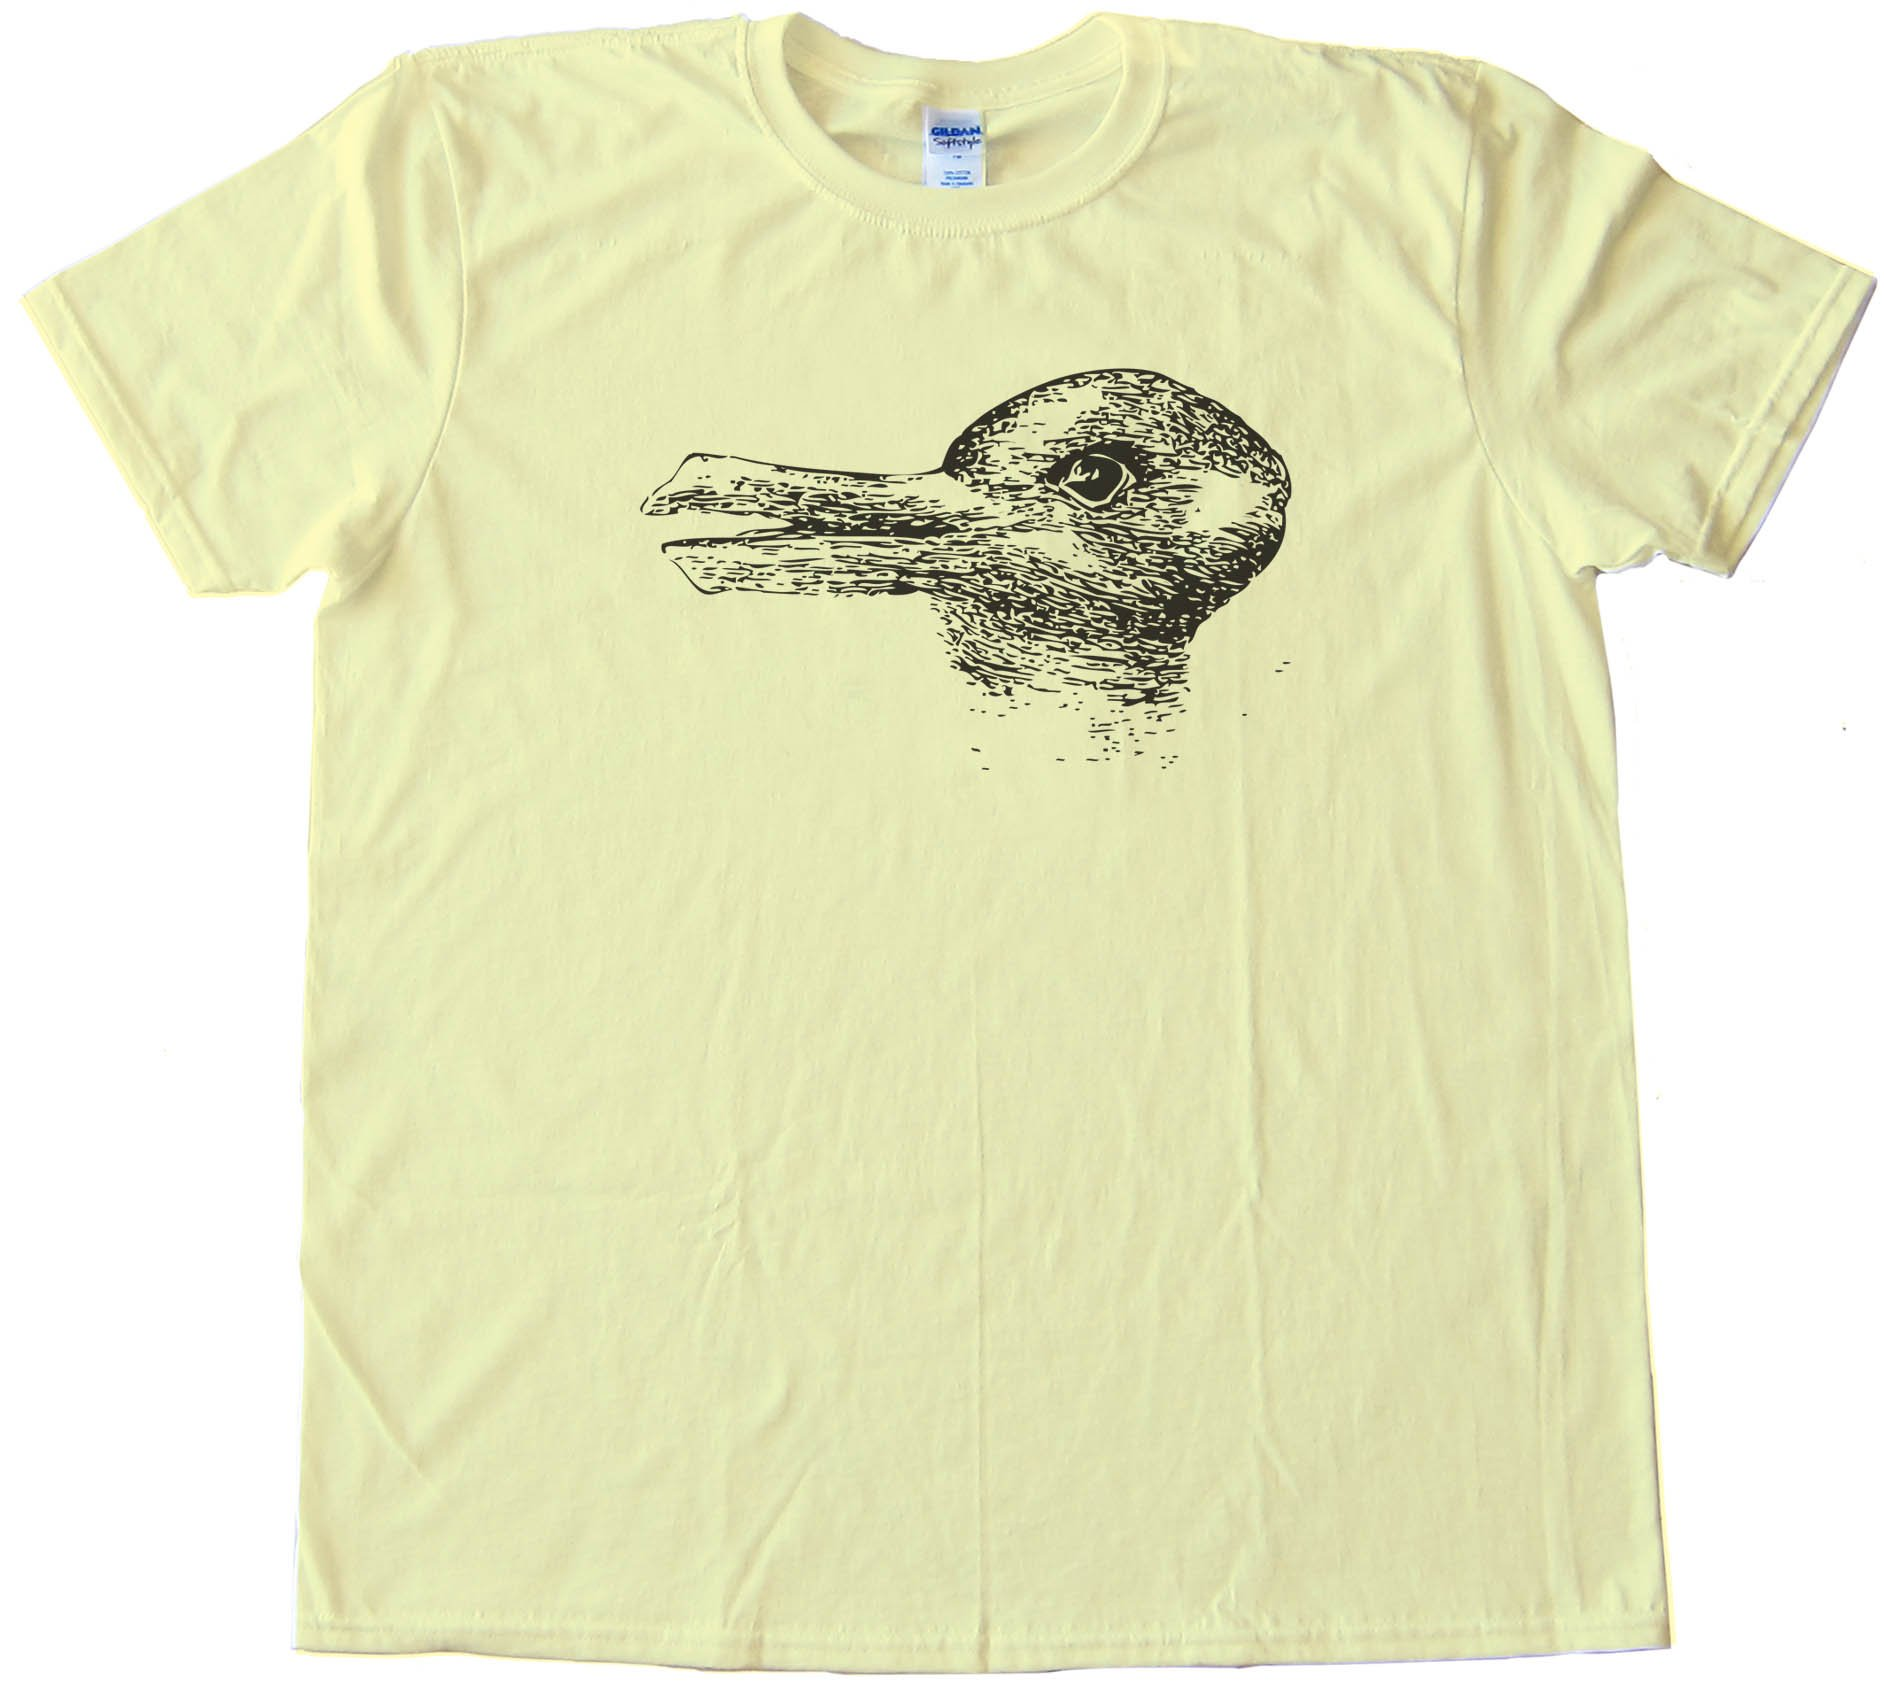 Duck Season Rabbit Season - Optical Illusion - Tee Shirt